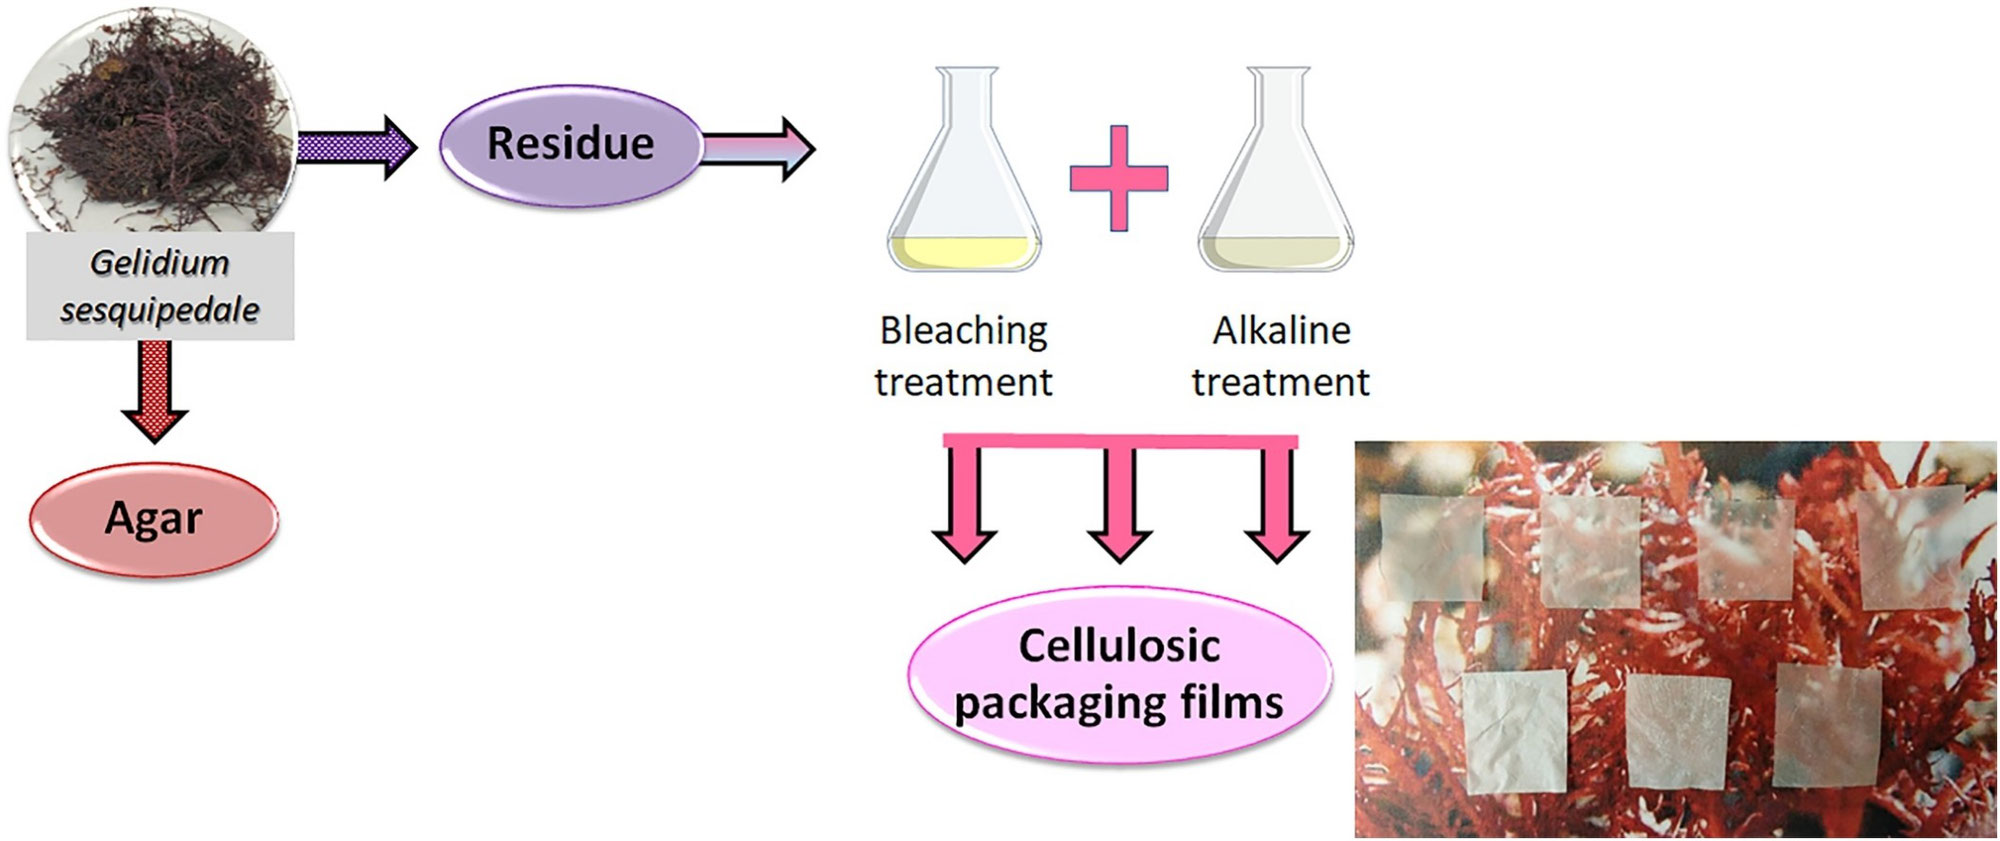 Improved performance of less purified cellulosicfilms obtained from agarwaste biomass